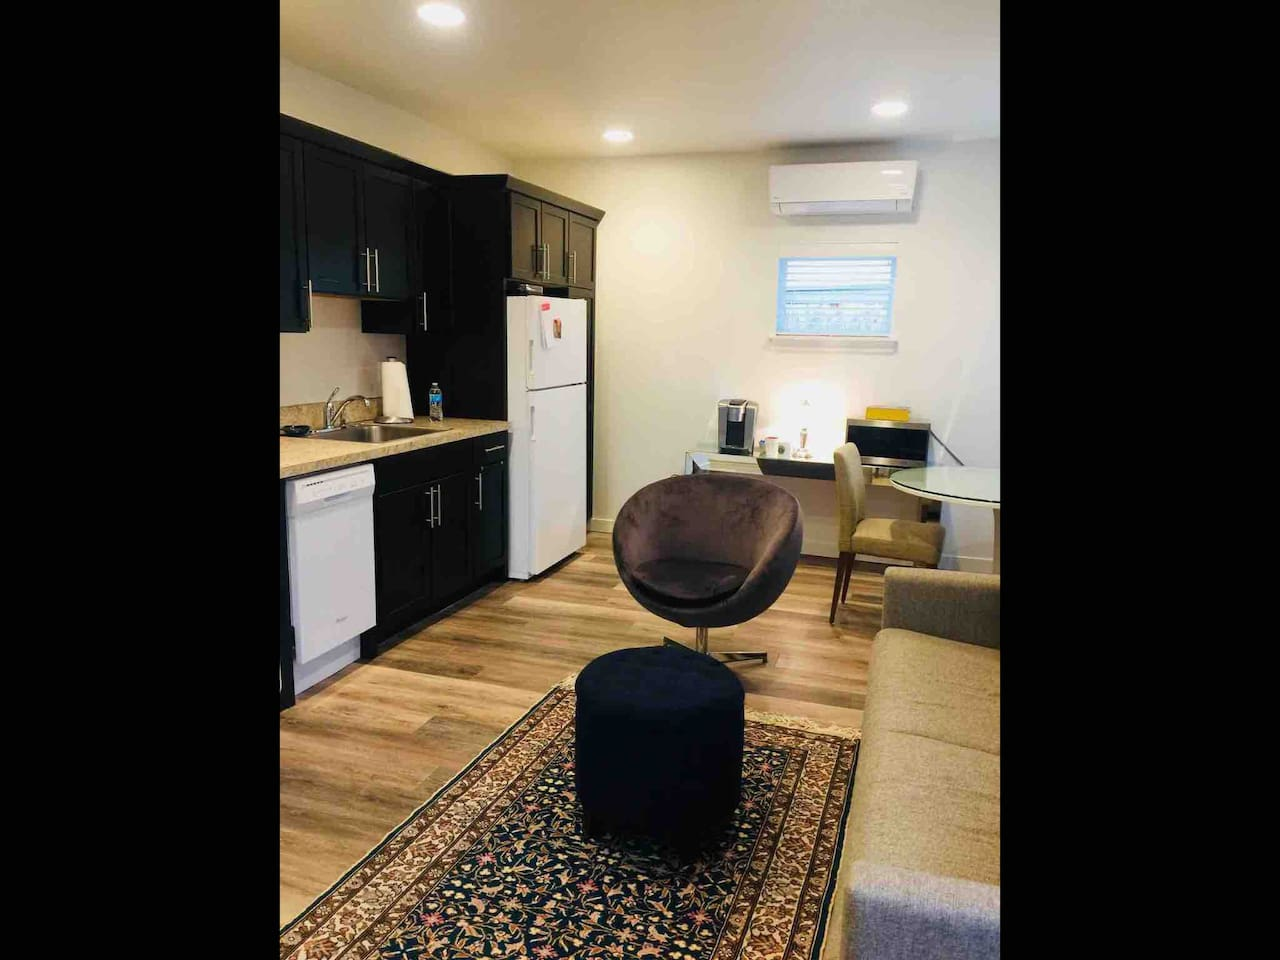 Big room with all new appliances, pedestal eating tAble, sofa bed, tv,